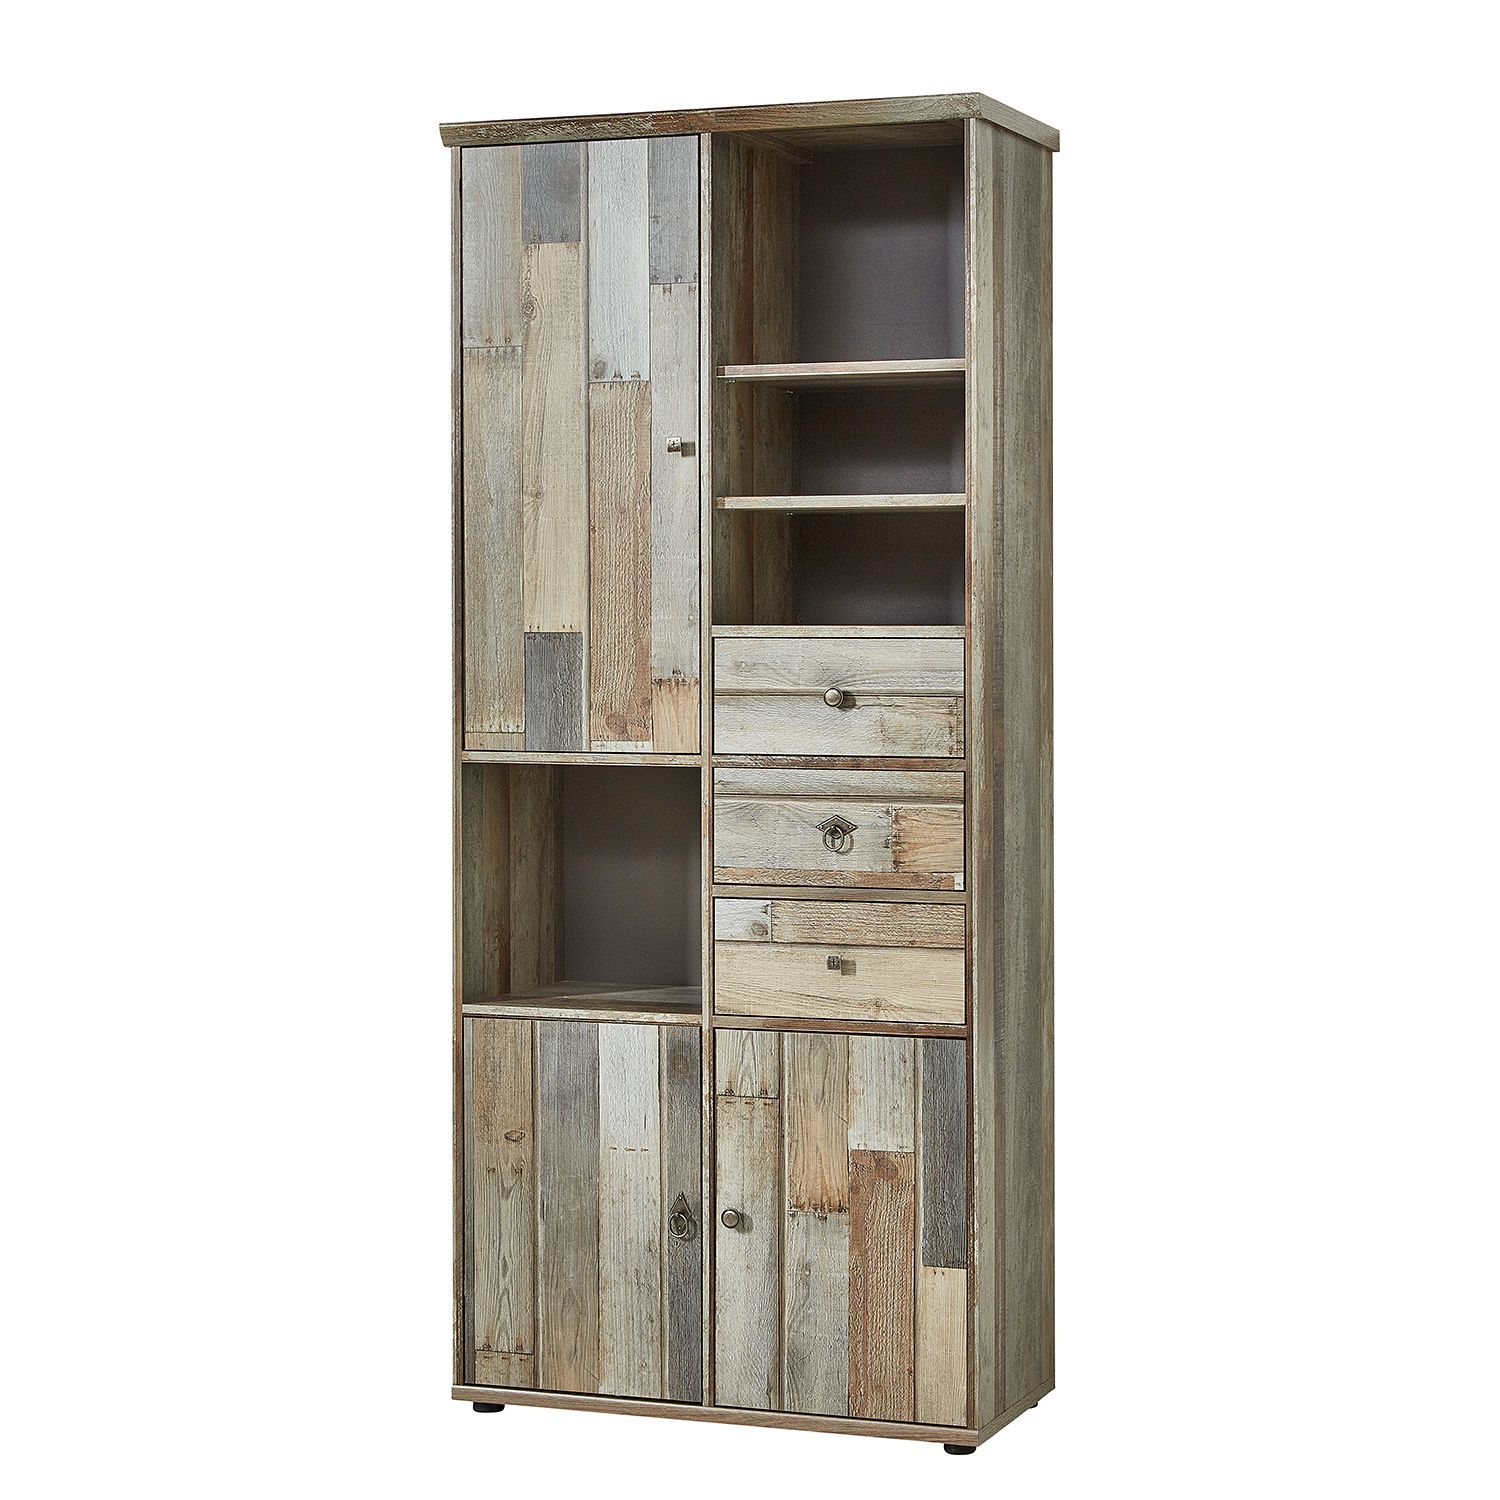 Armoire Tapara - Marron / Gris, roomscape